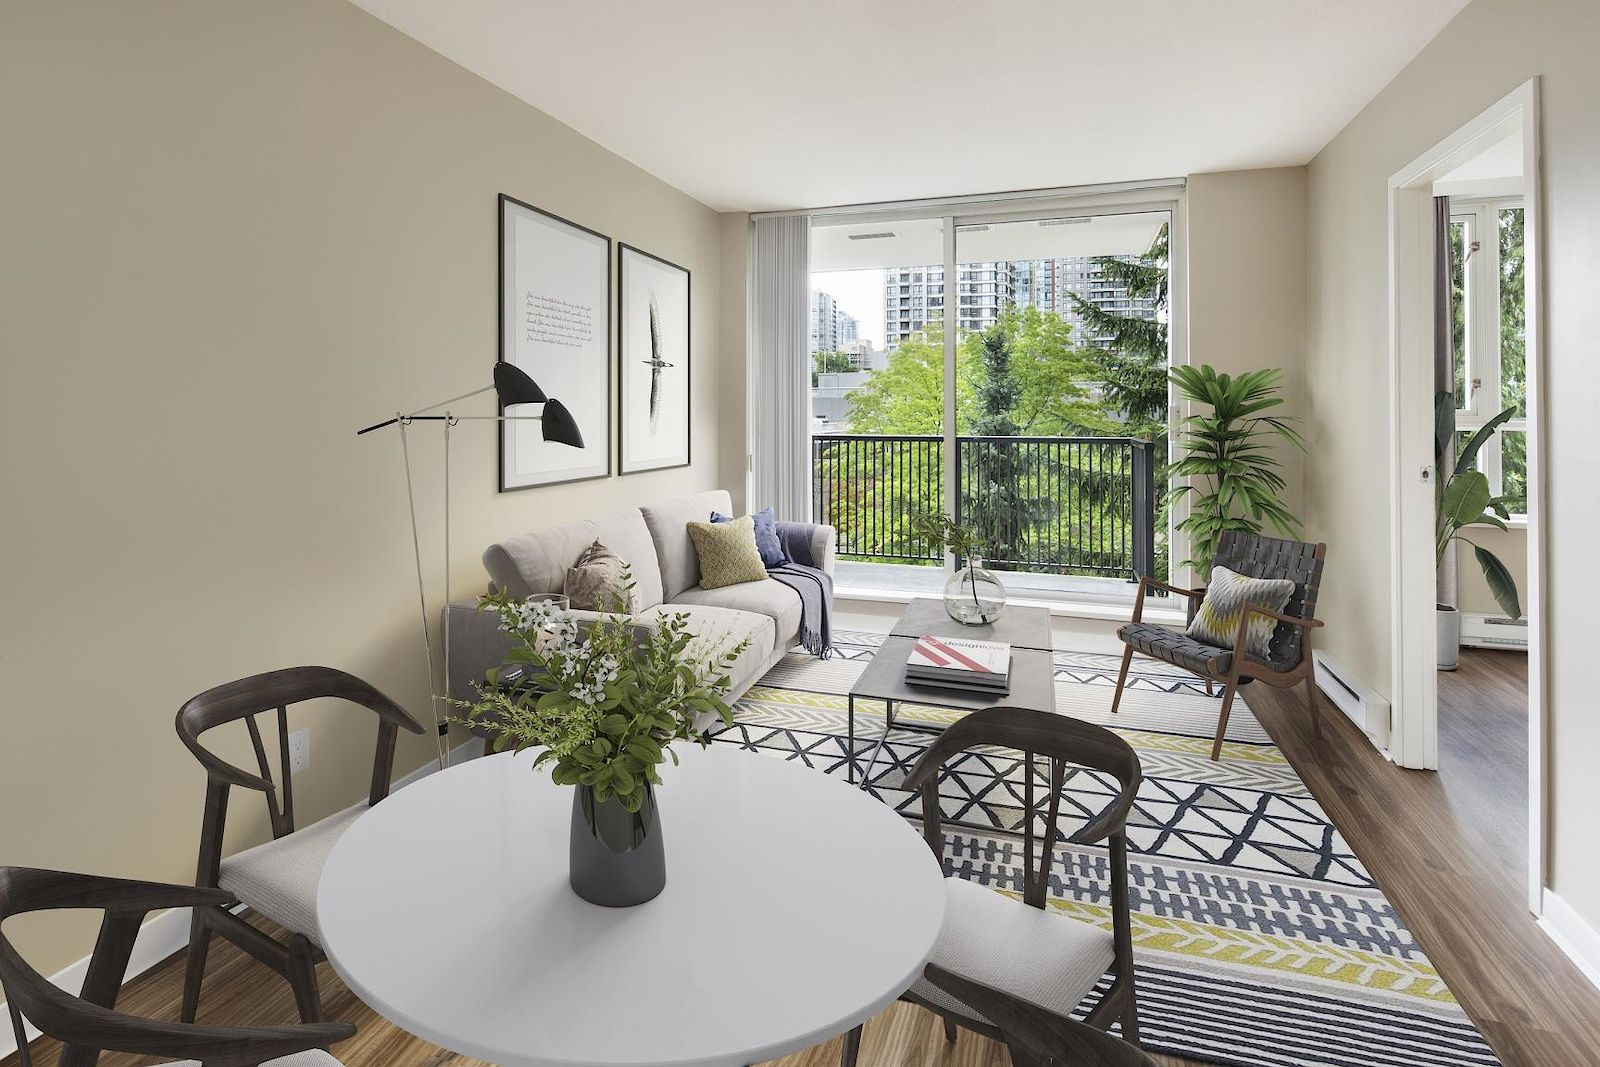 Vancouver Pet Friendly Apartment For Rent | Yaletown ...